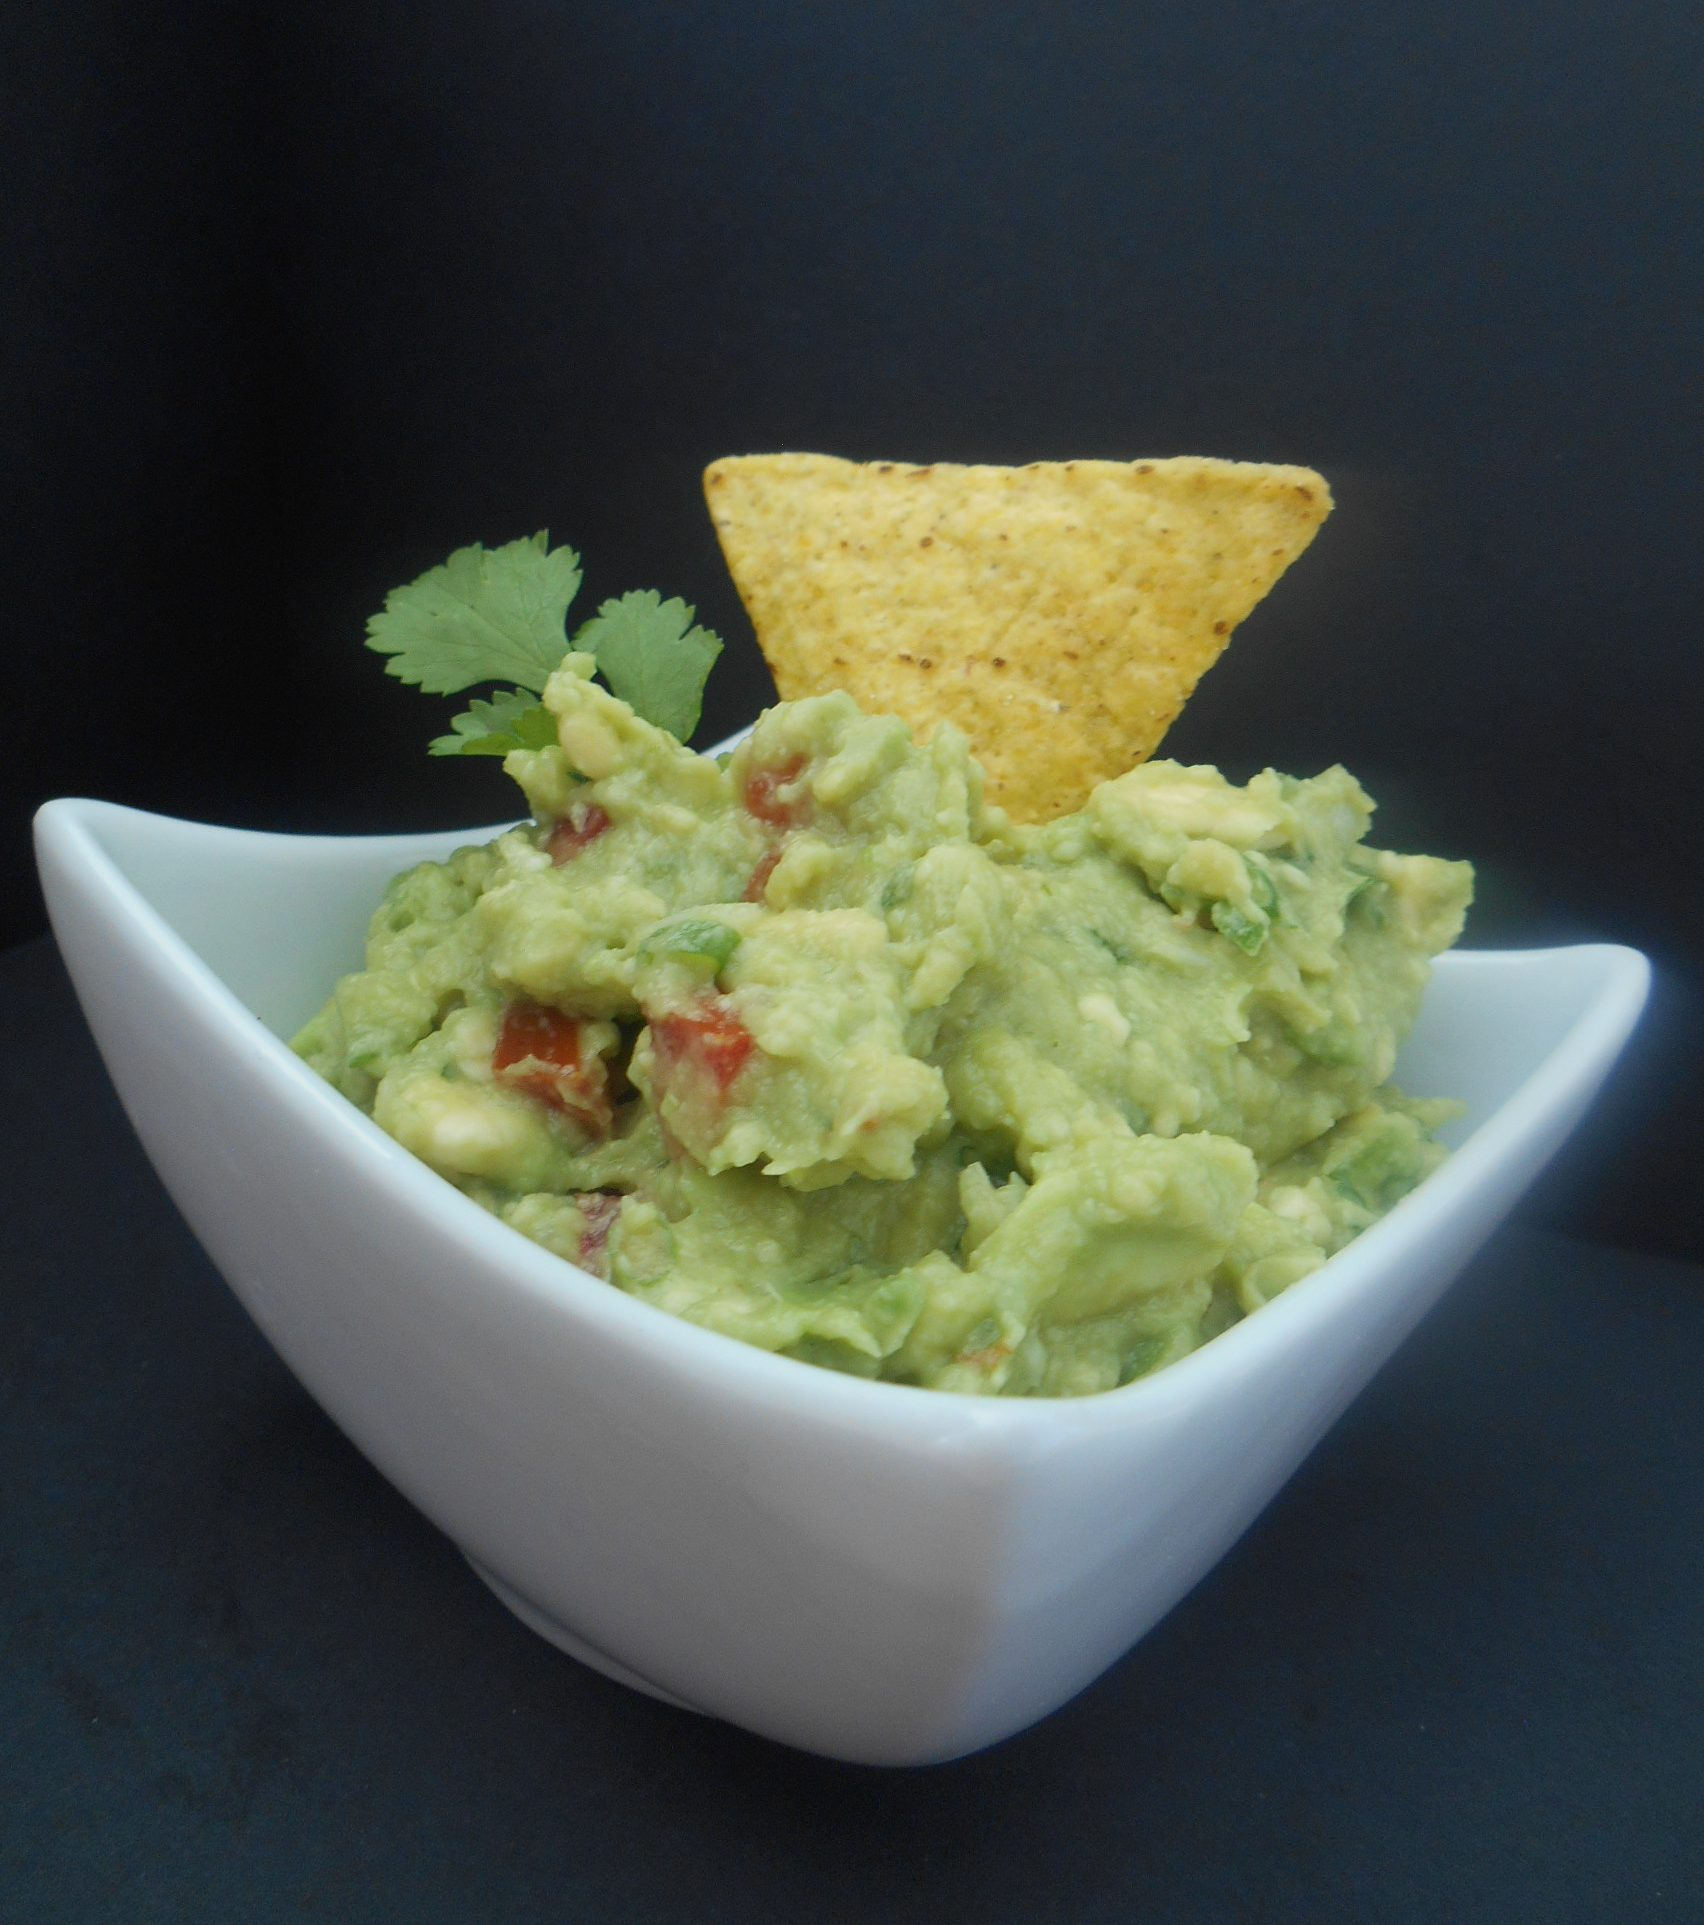 GUACAMOLE TRADITIONNEL